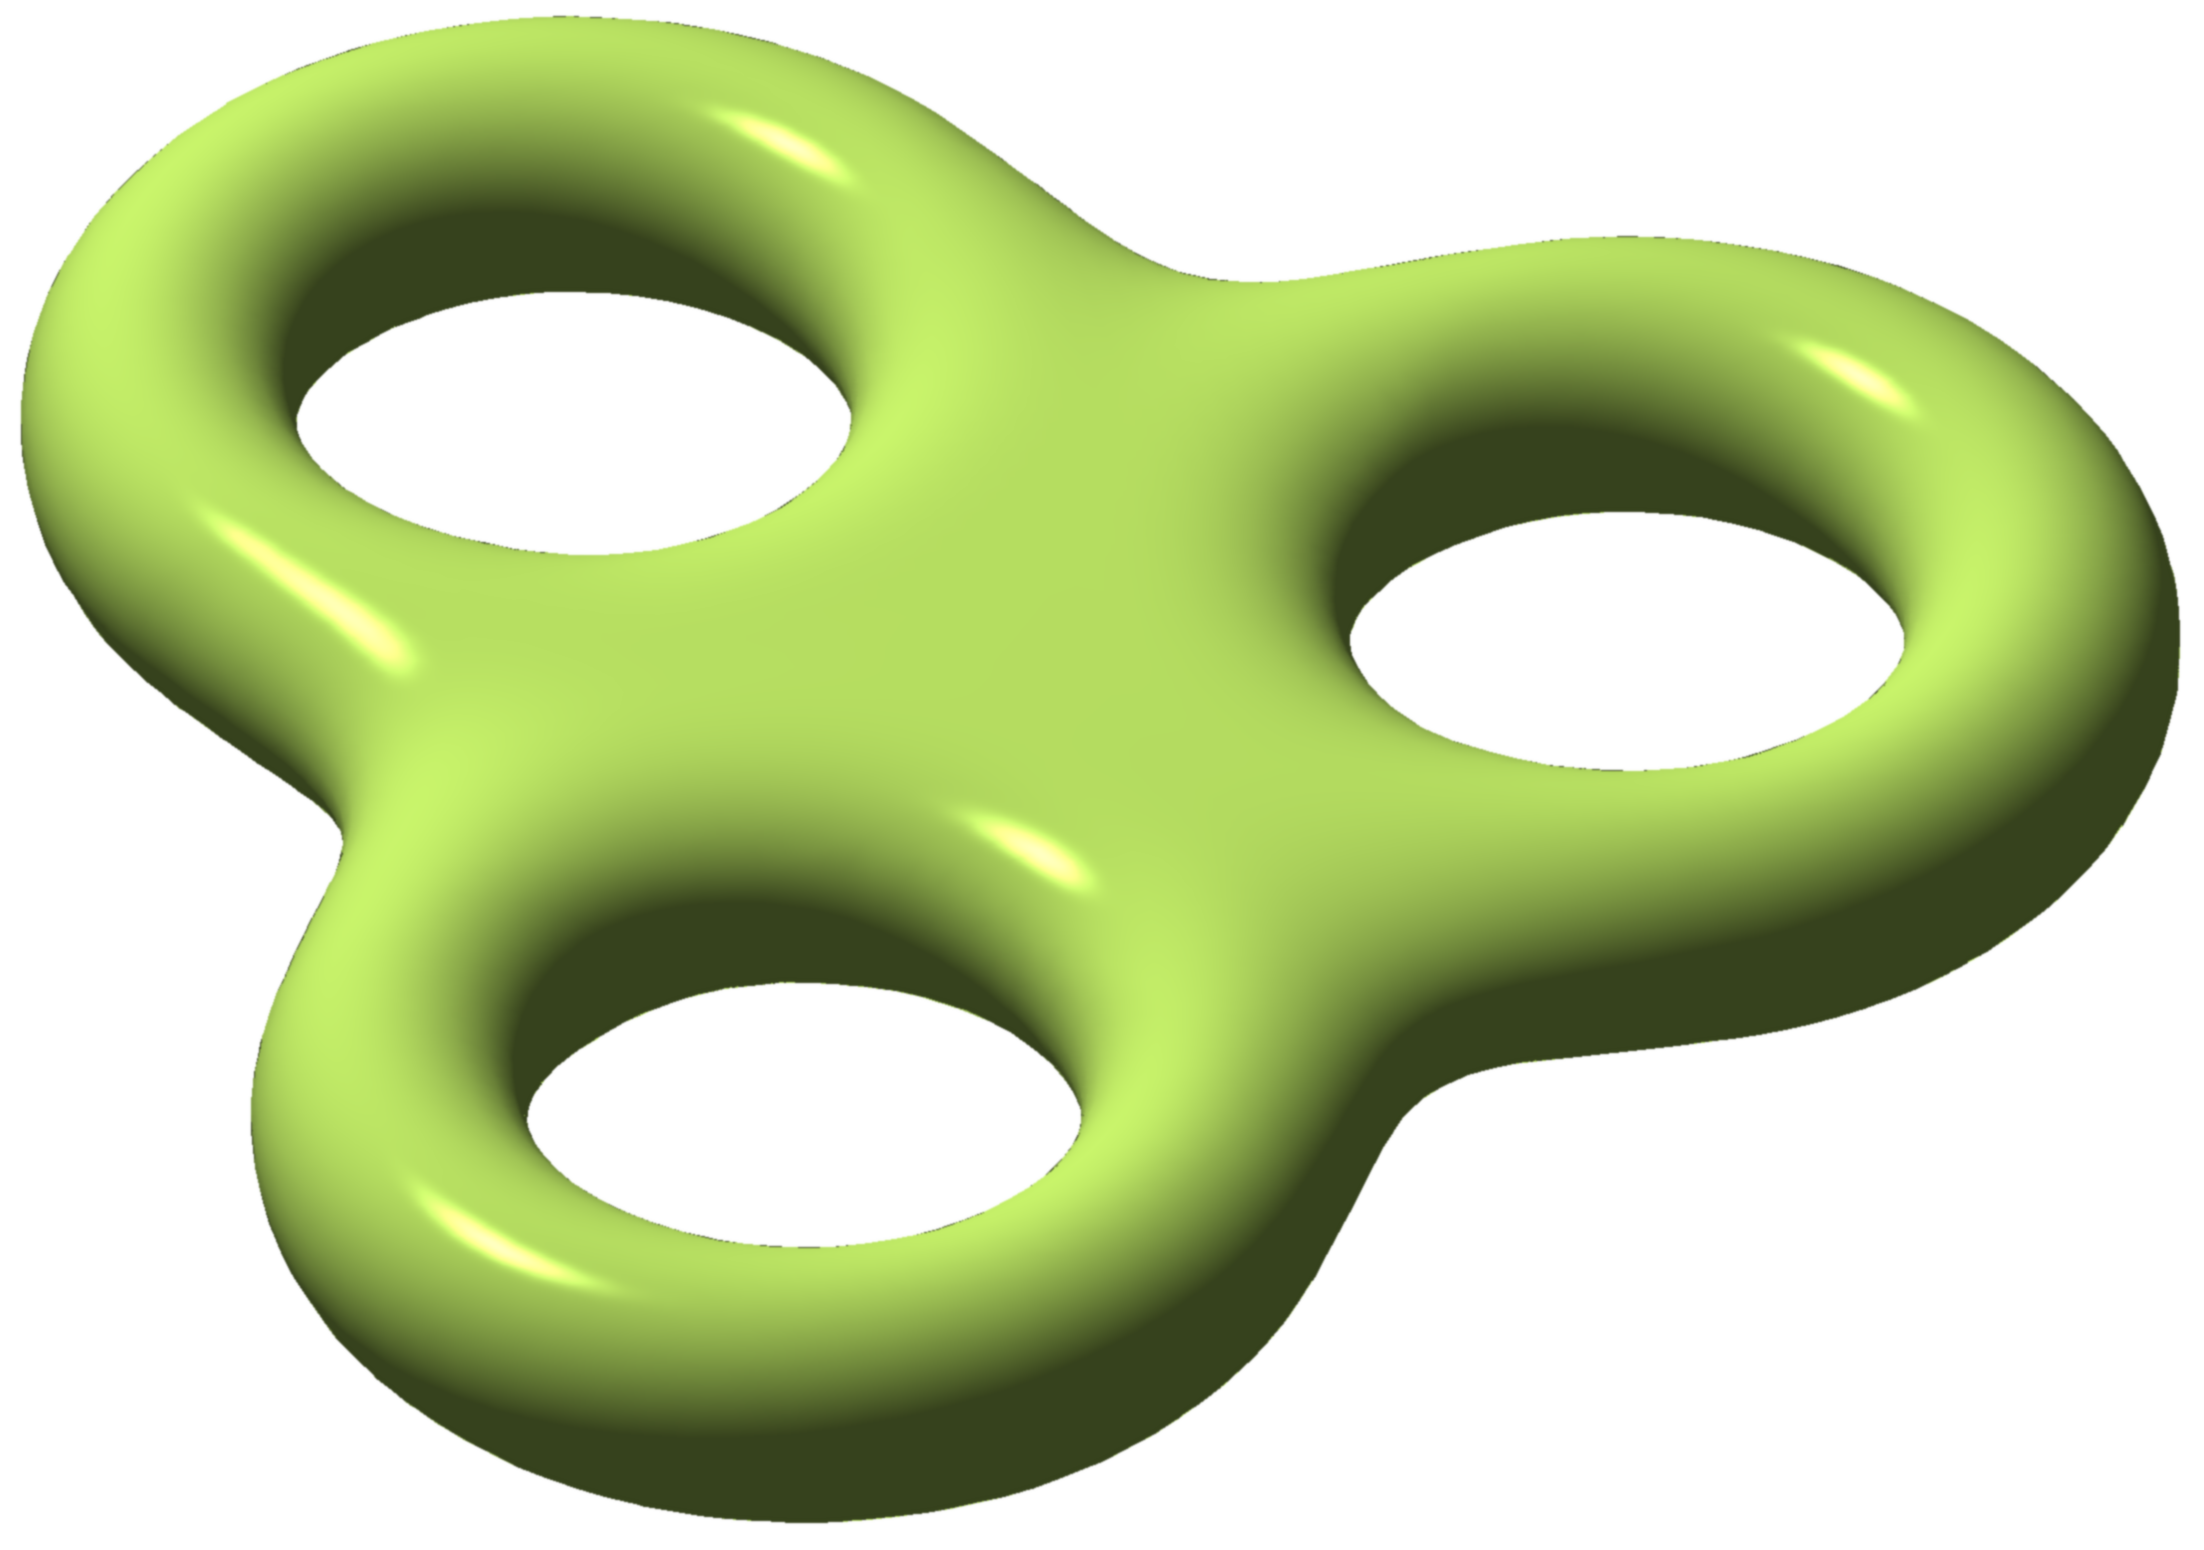 Torus wikiwand for Minimal significato